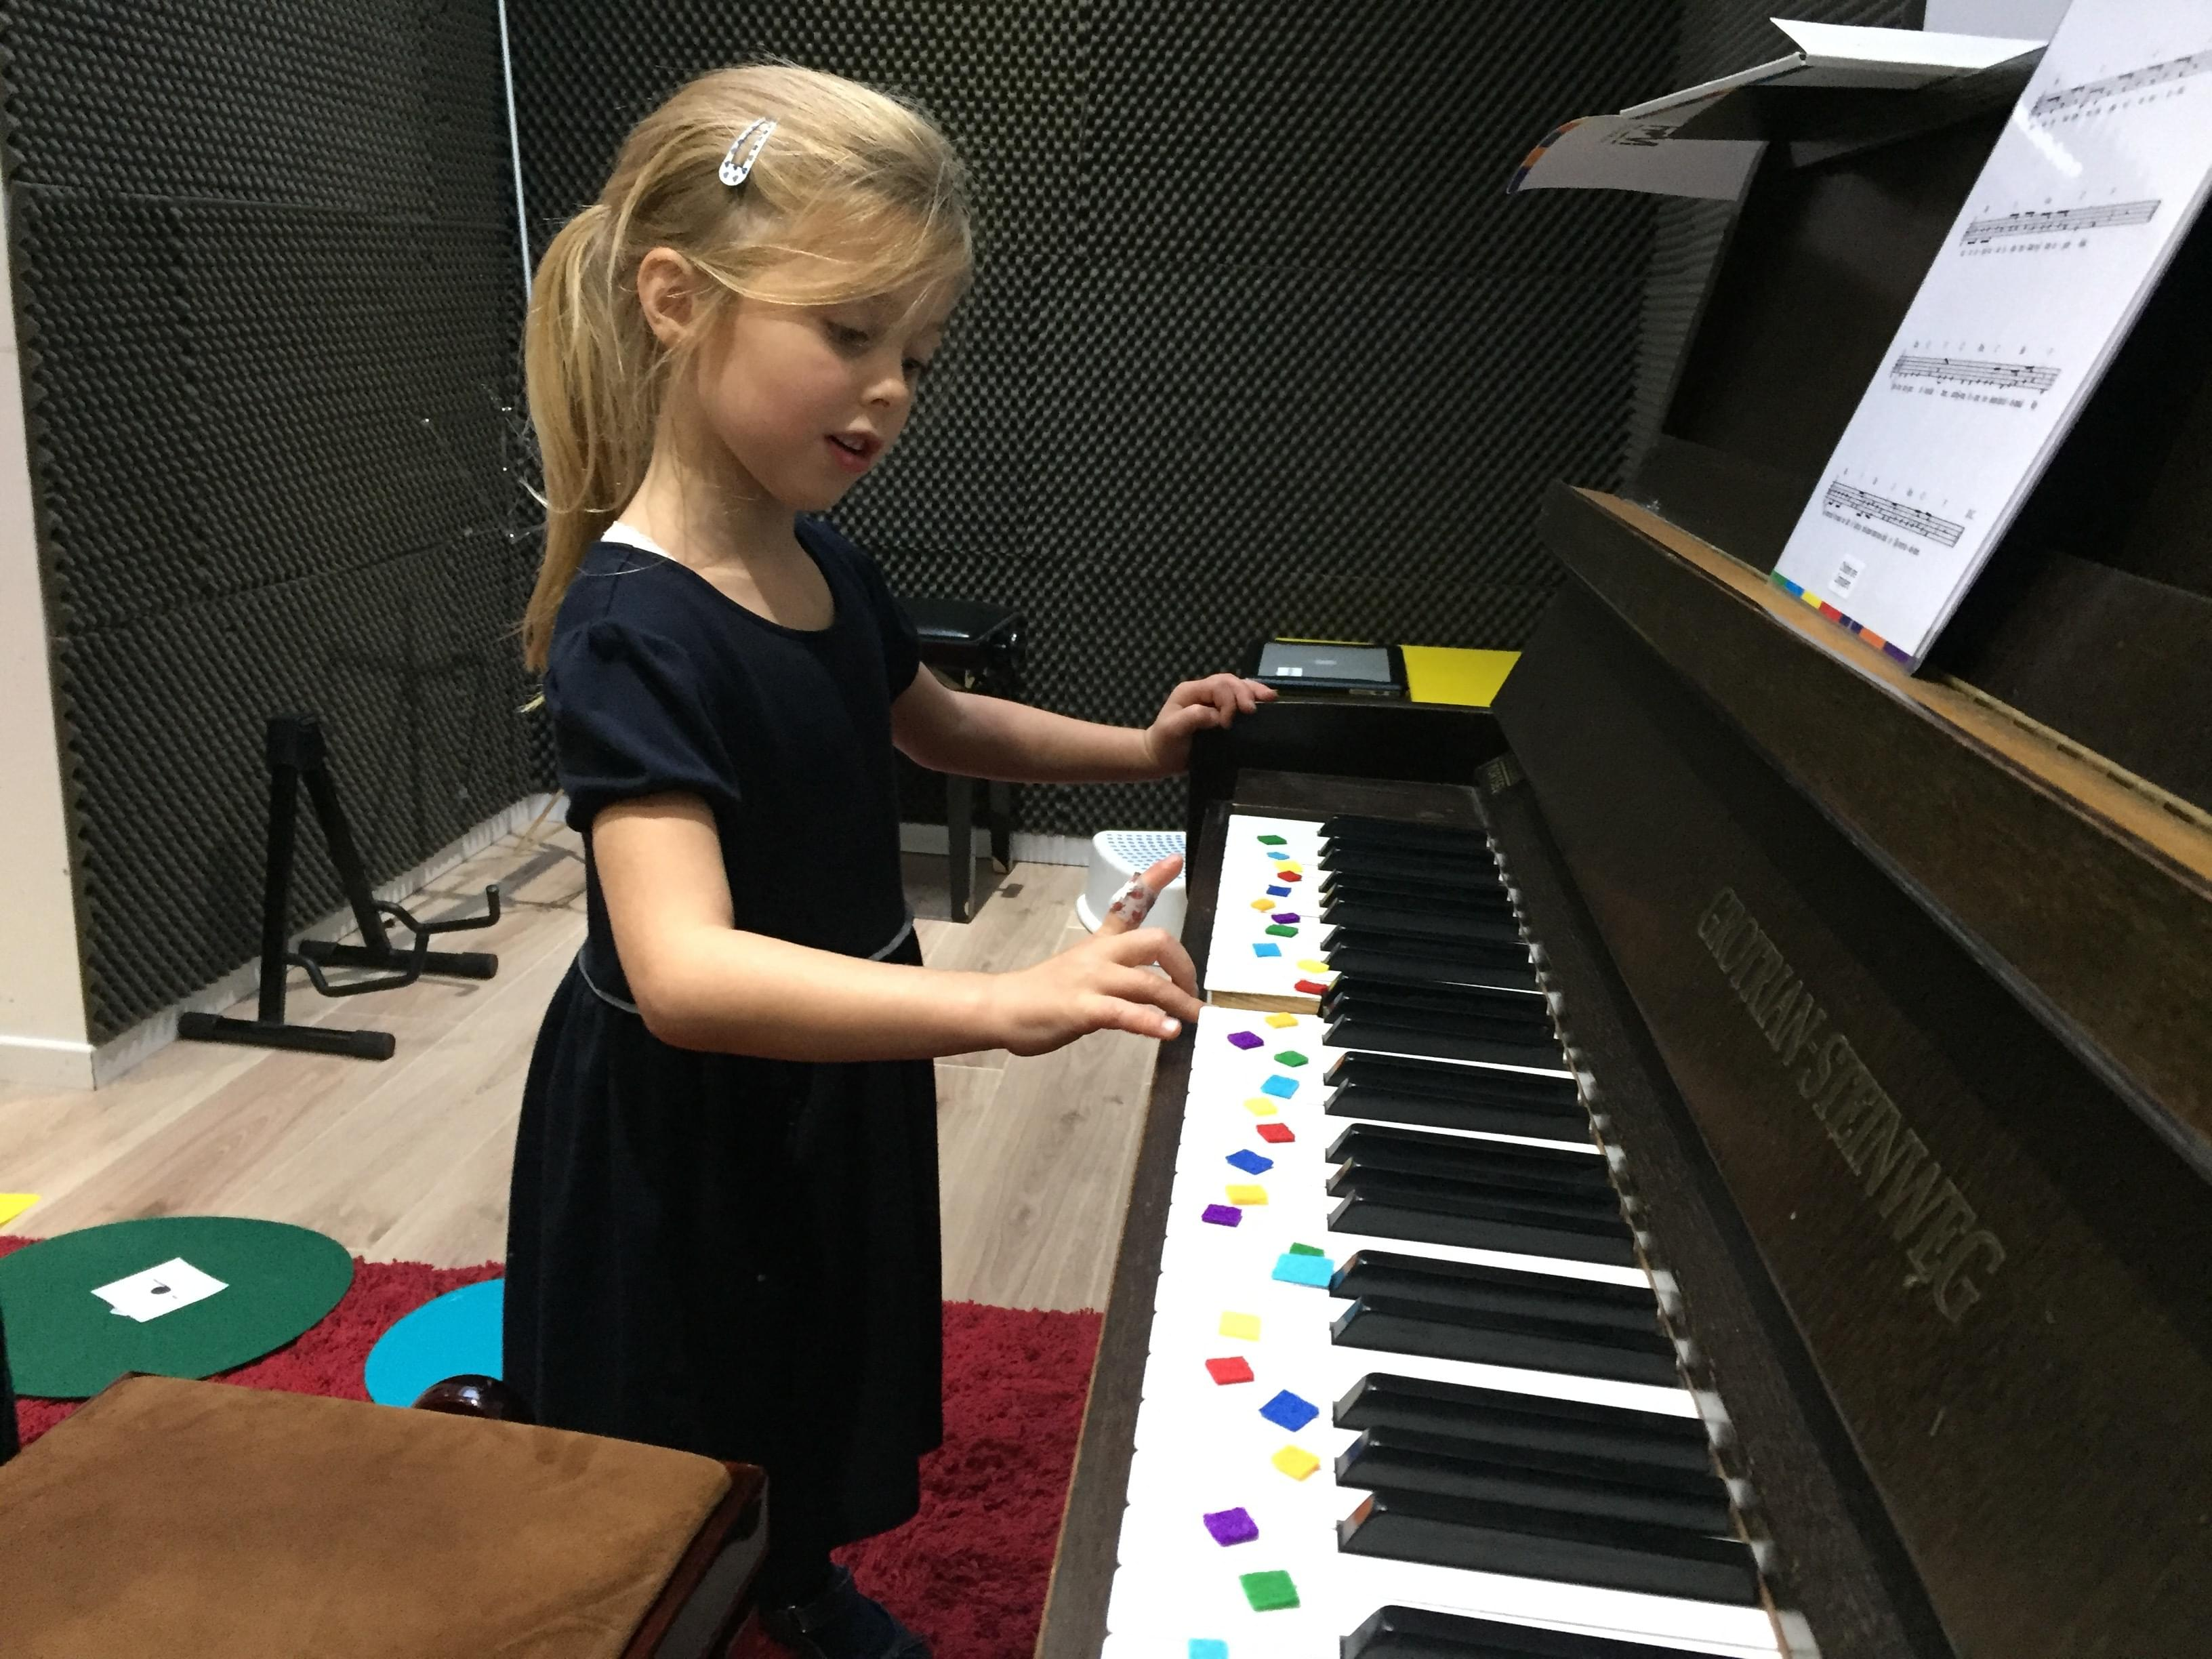 https://www.childrenarecomposers.com/familyawjl6zzpA3bVq40d